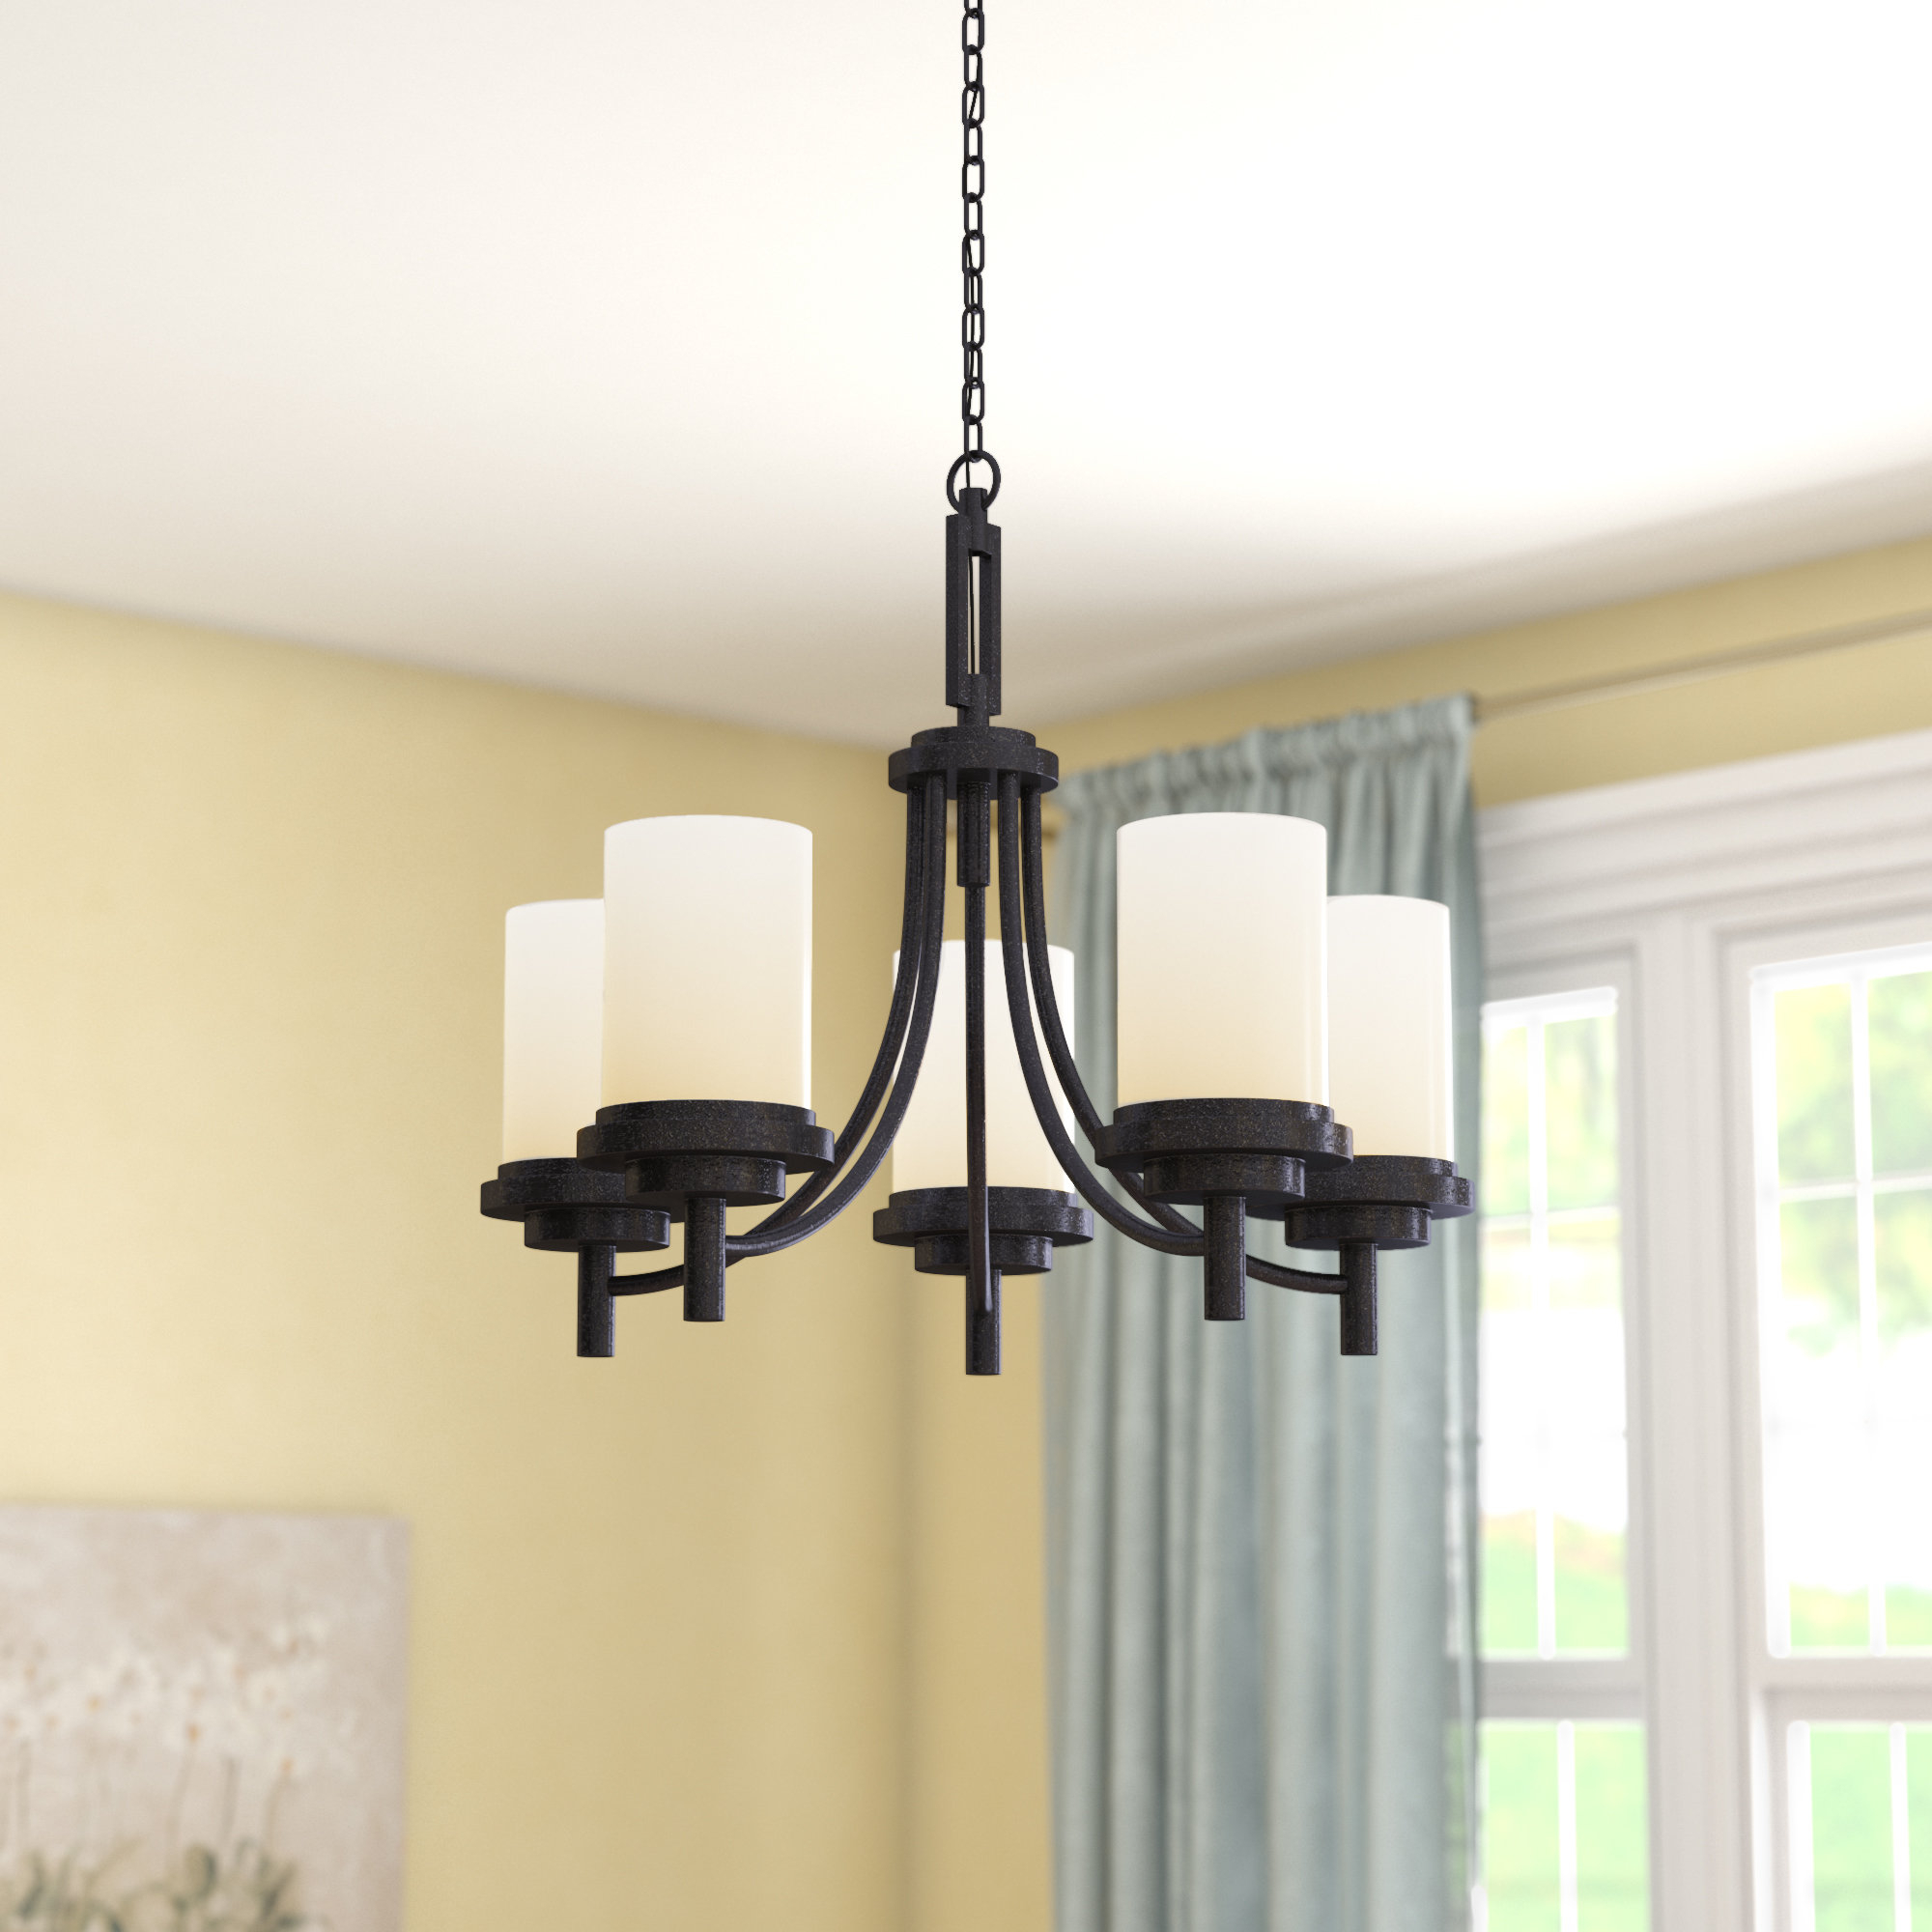 Tilford 5 Light Shaded Chandelier Pertaining To Crofoot 5 Light Shaded Chandeliers (View 14 of 30)